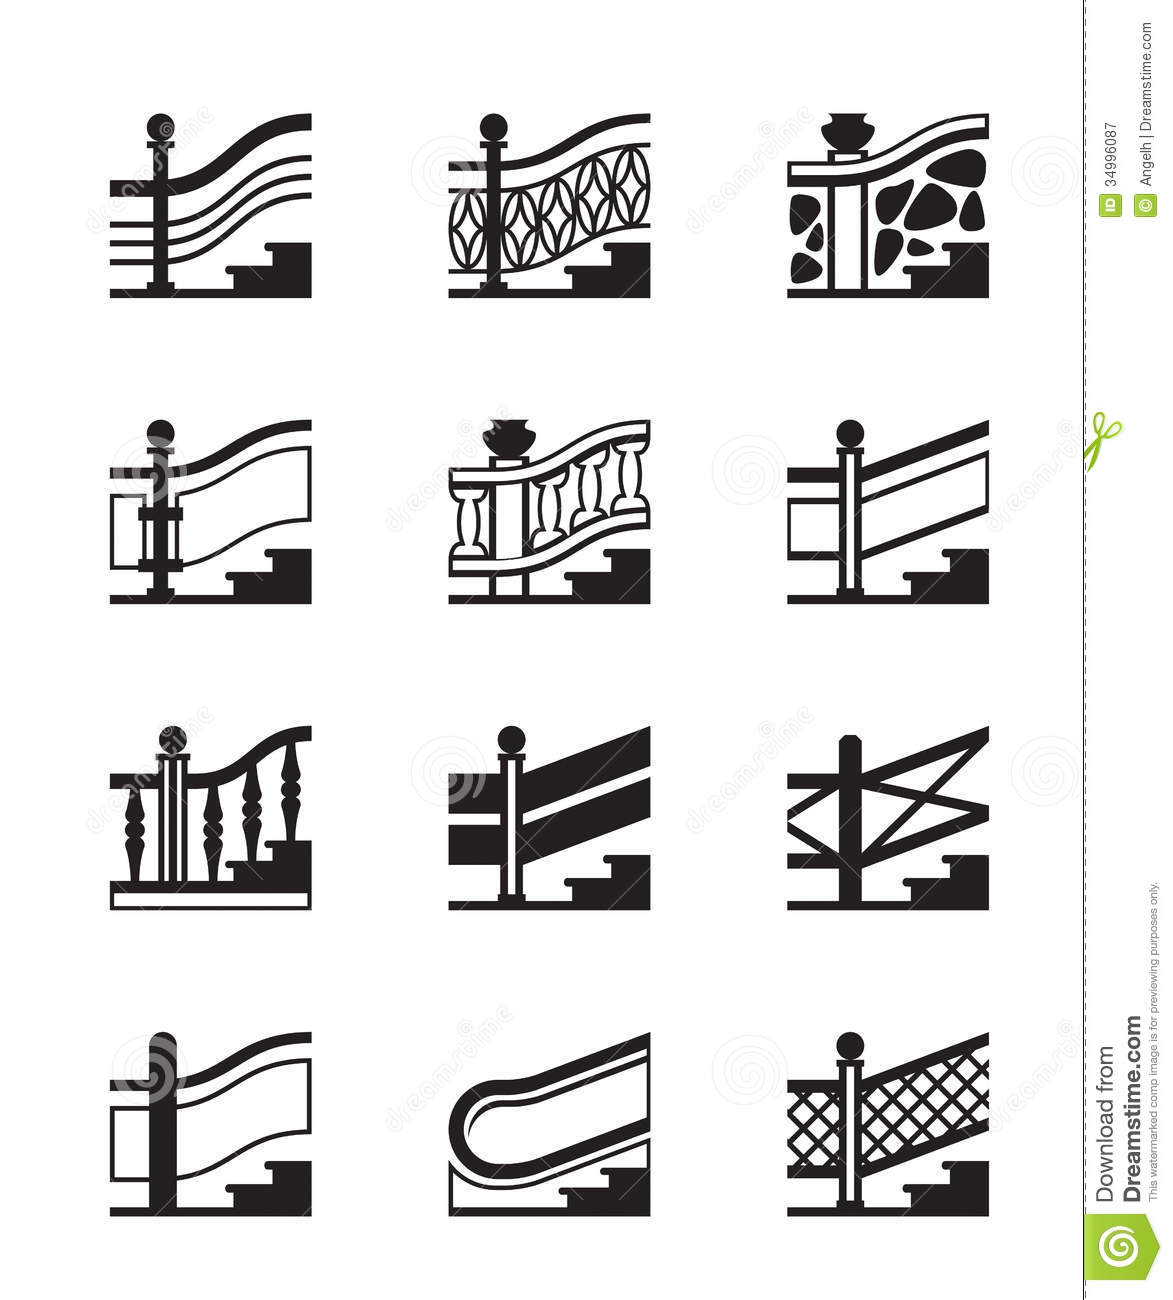 Different Types Of Railings Royalty Free Stock Photography